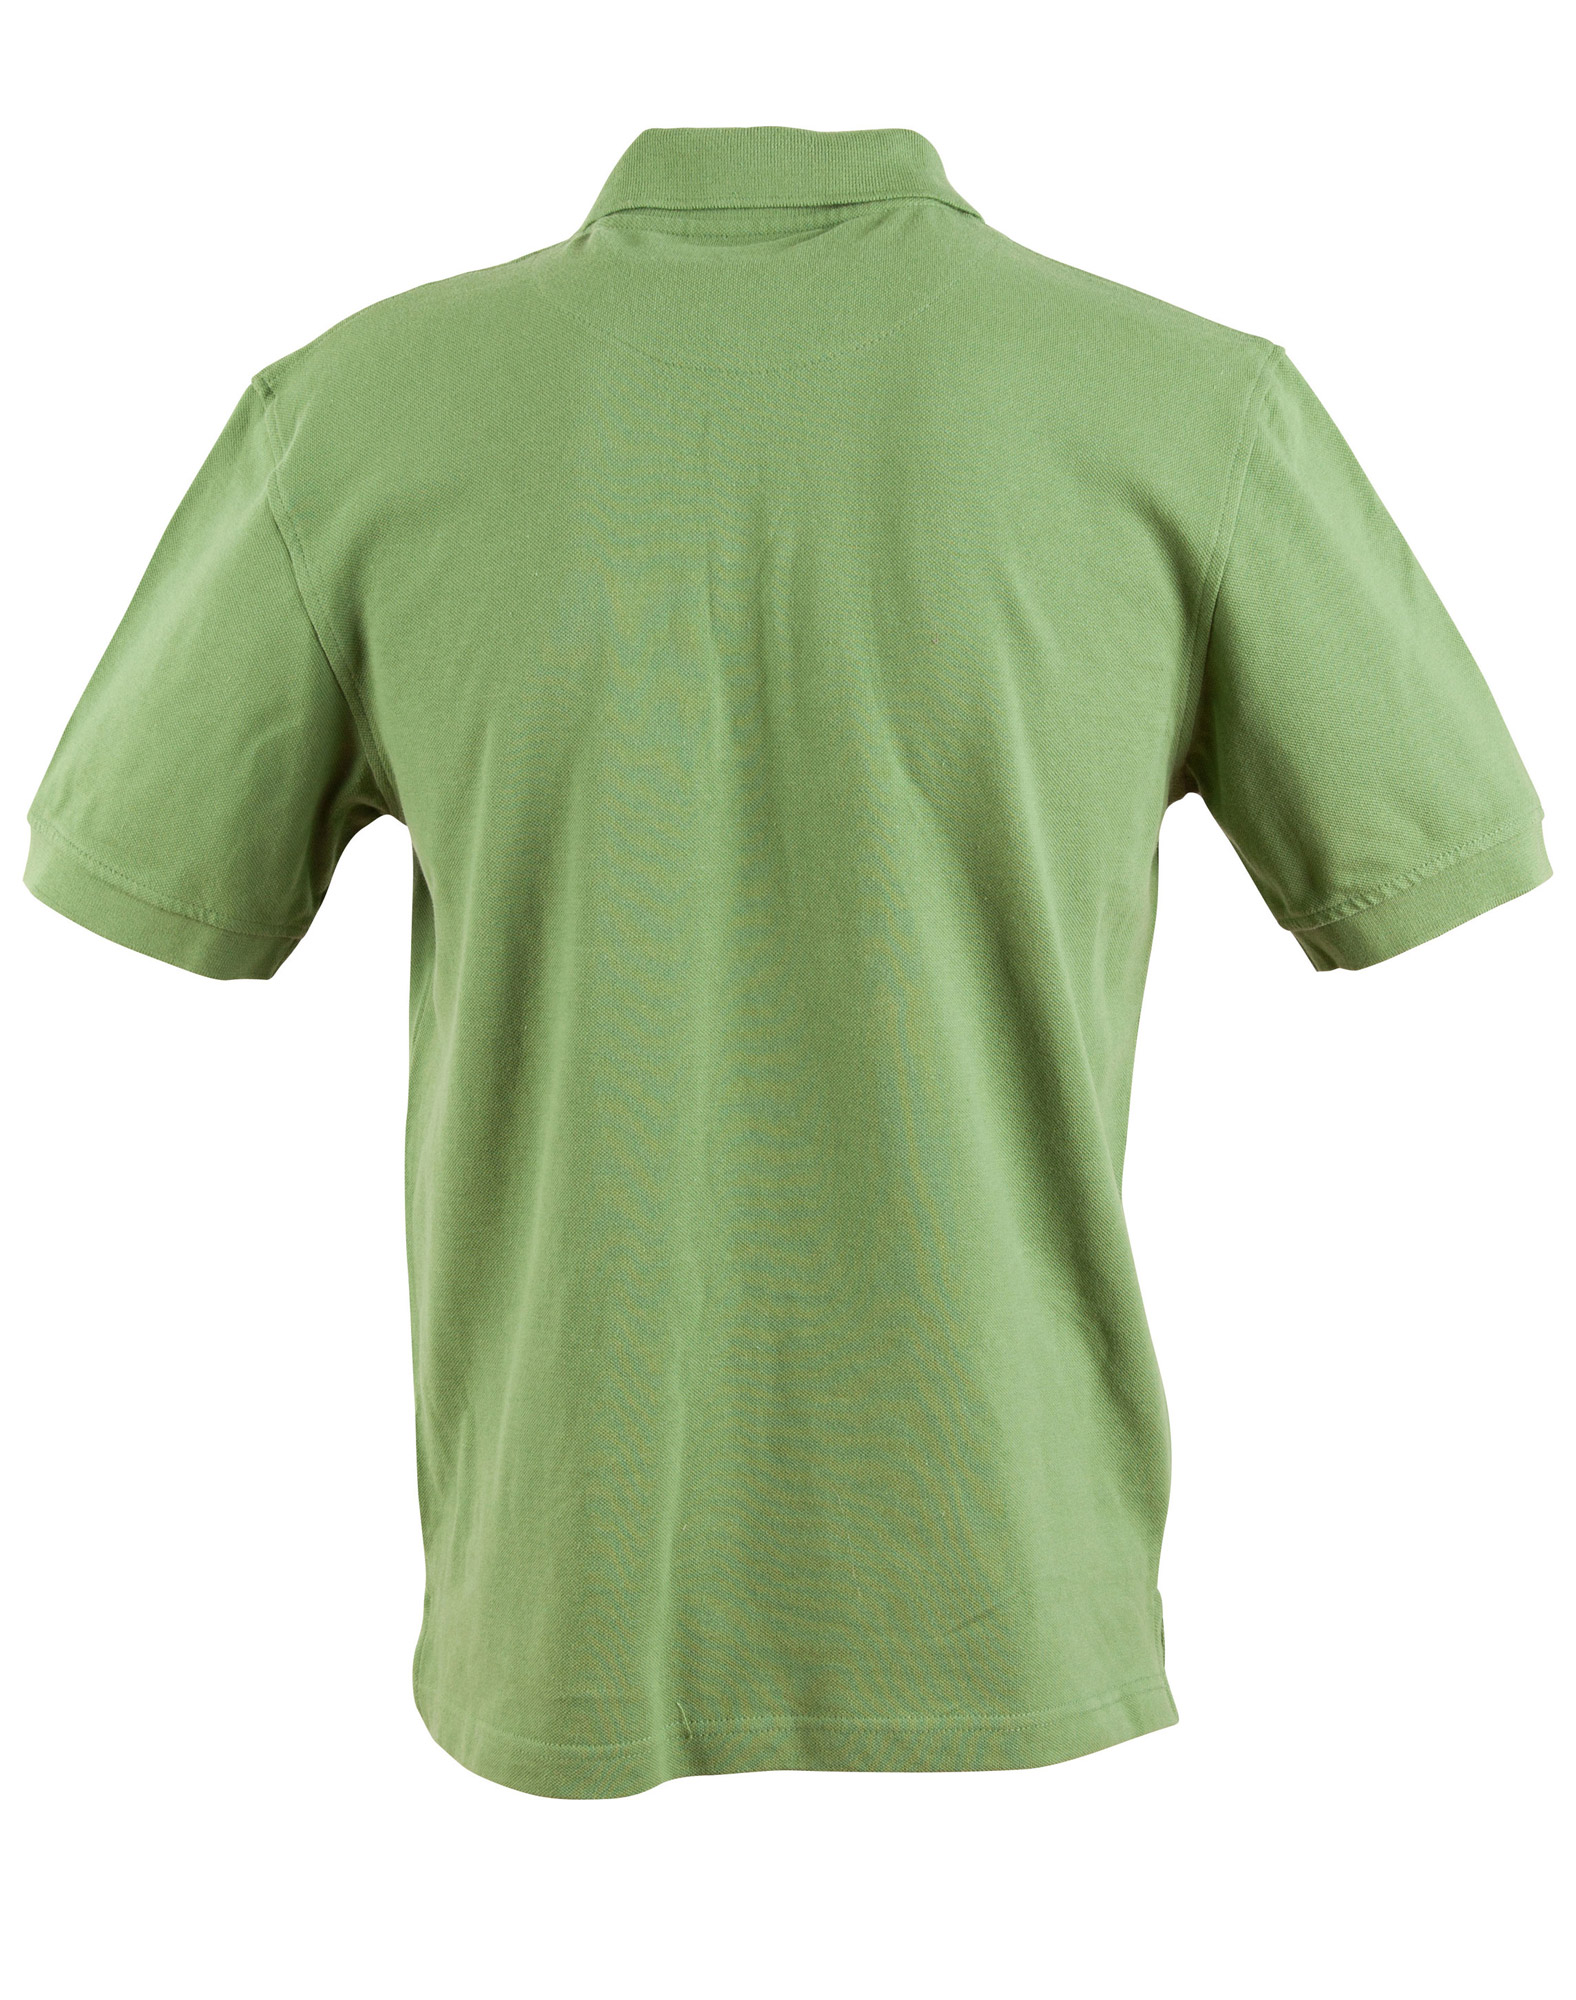 https://s3-ap-southeast-1.amazonaws.com/ws-imgs/POLOSHIRTS/PS39_Green_Back_l.jpg